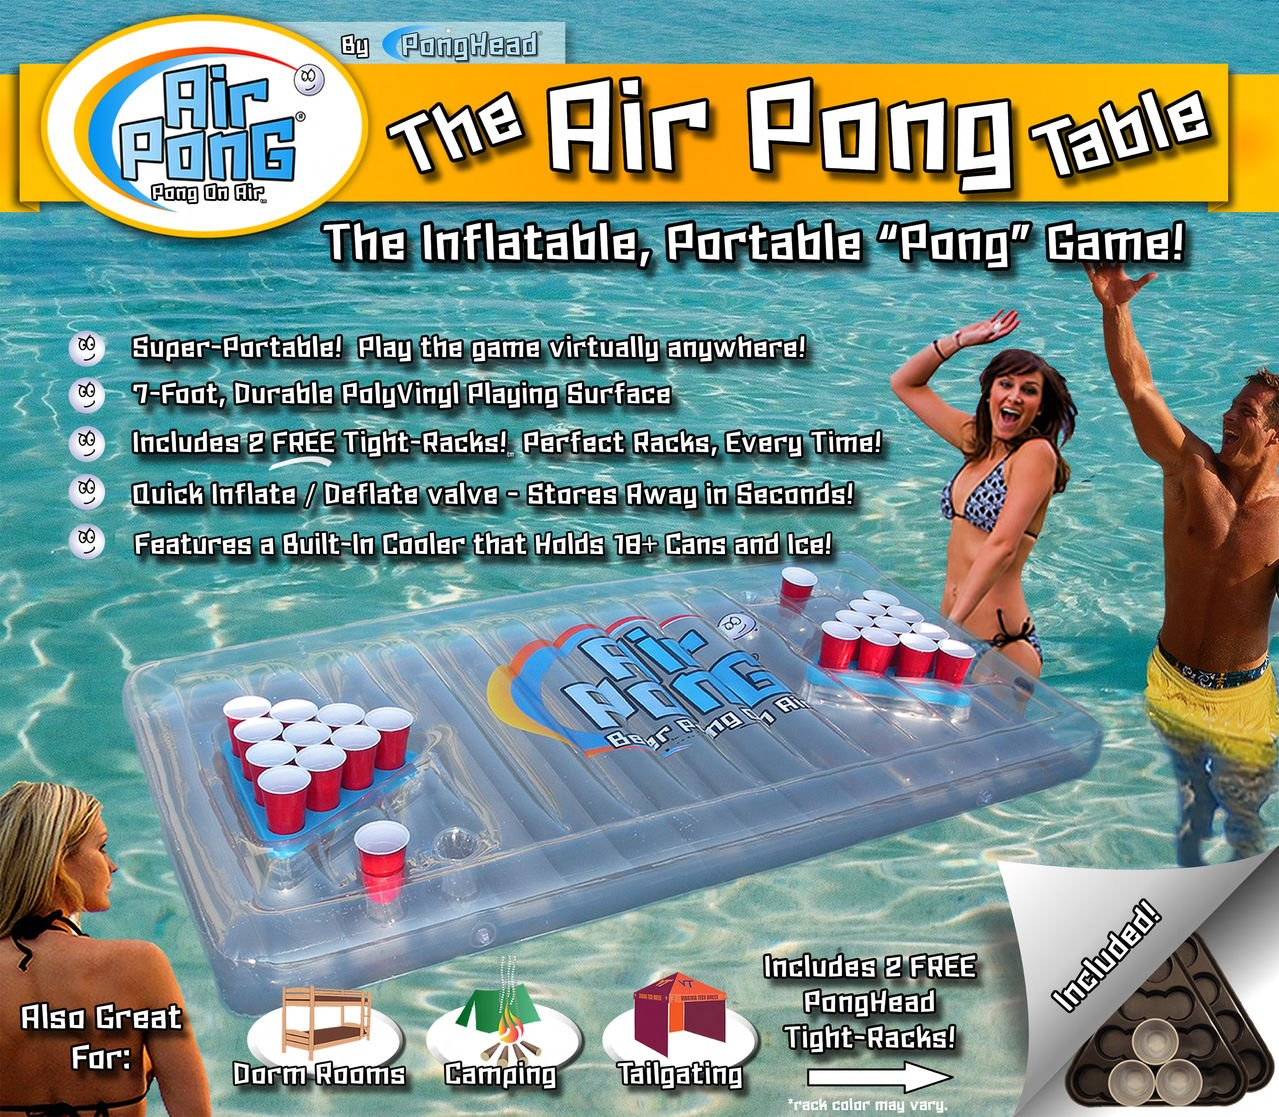 The Air Pong Table, Inflatable Beer Pong Cooler, Floating Beer Pong Table, 7ft, Vinyl, Lightweight, Portable, Comes with a Built-in Cooler and Free Plastic Racks, by PongHead